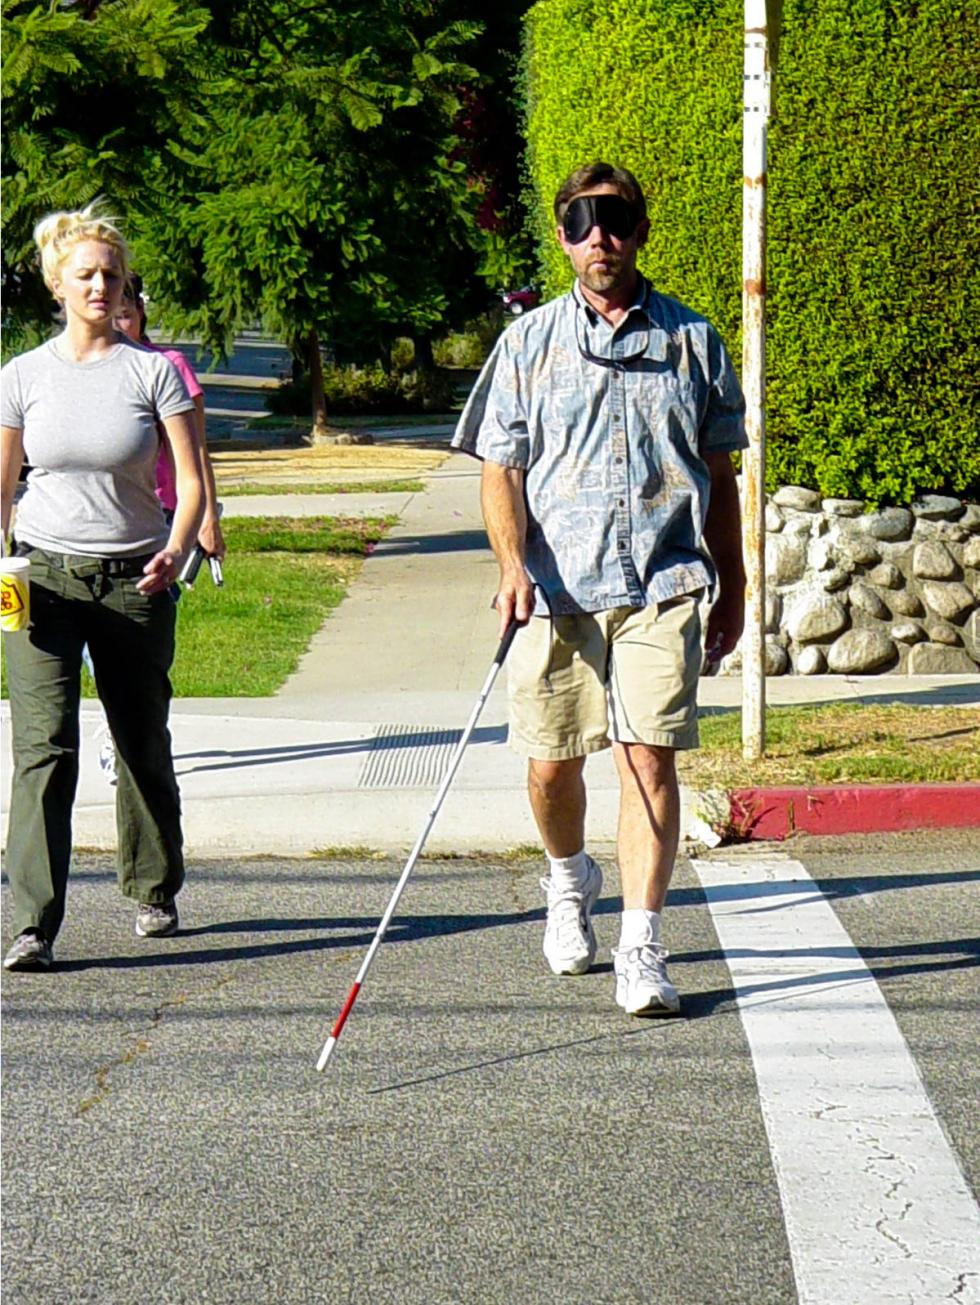 2004 Cal State LA O&M graduates practice simulated travel and teaching in a residential environment - pictured Keith Tomlinson using two-point touch can technique as he crosses the street and Layna Marshall monitoring his travel.